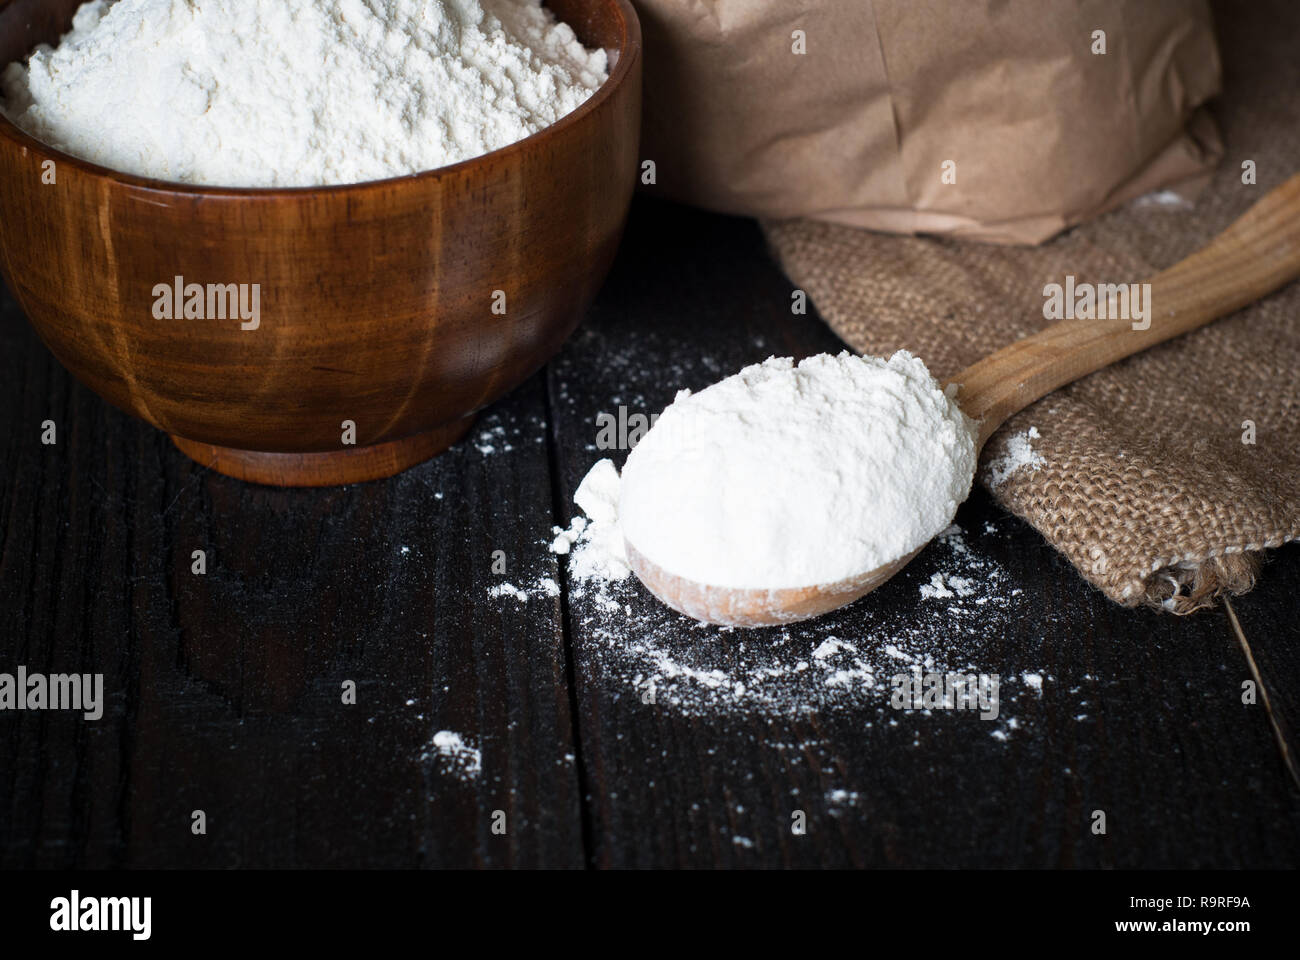 Flour in a wooden bowl, paper bag and spoon. Rustic Style, space for text. - Stock Image